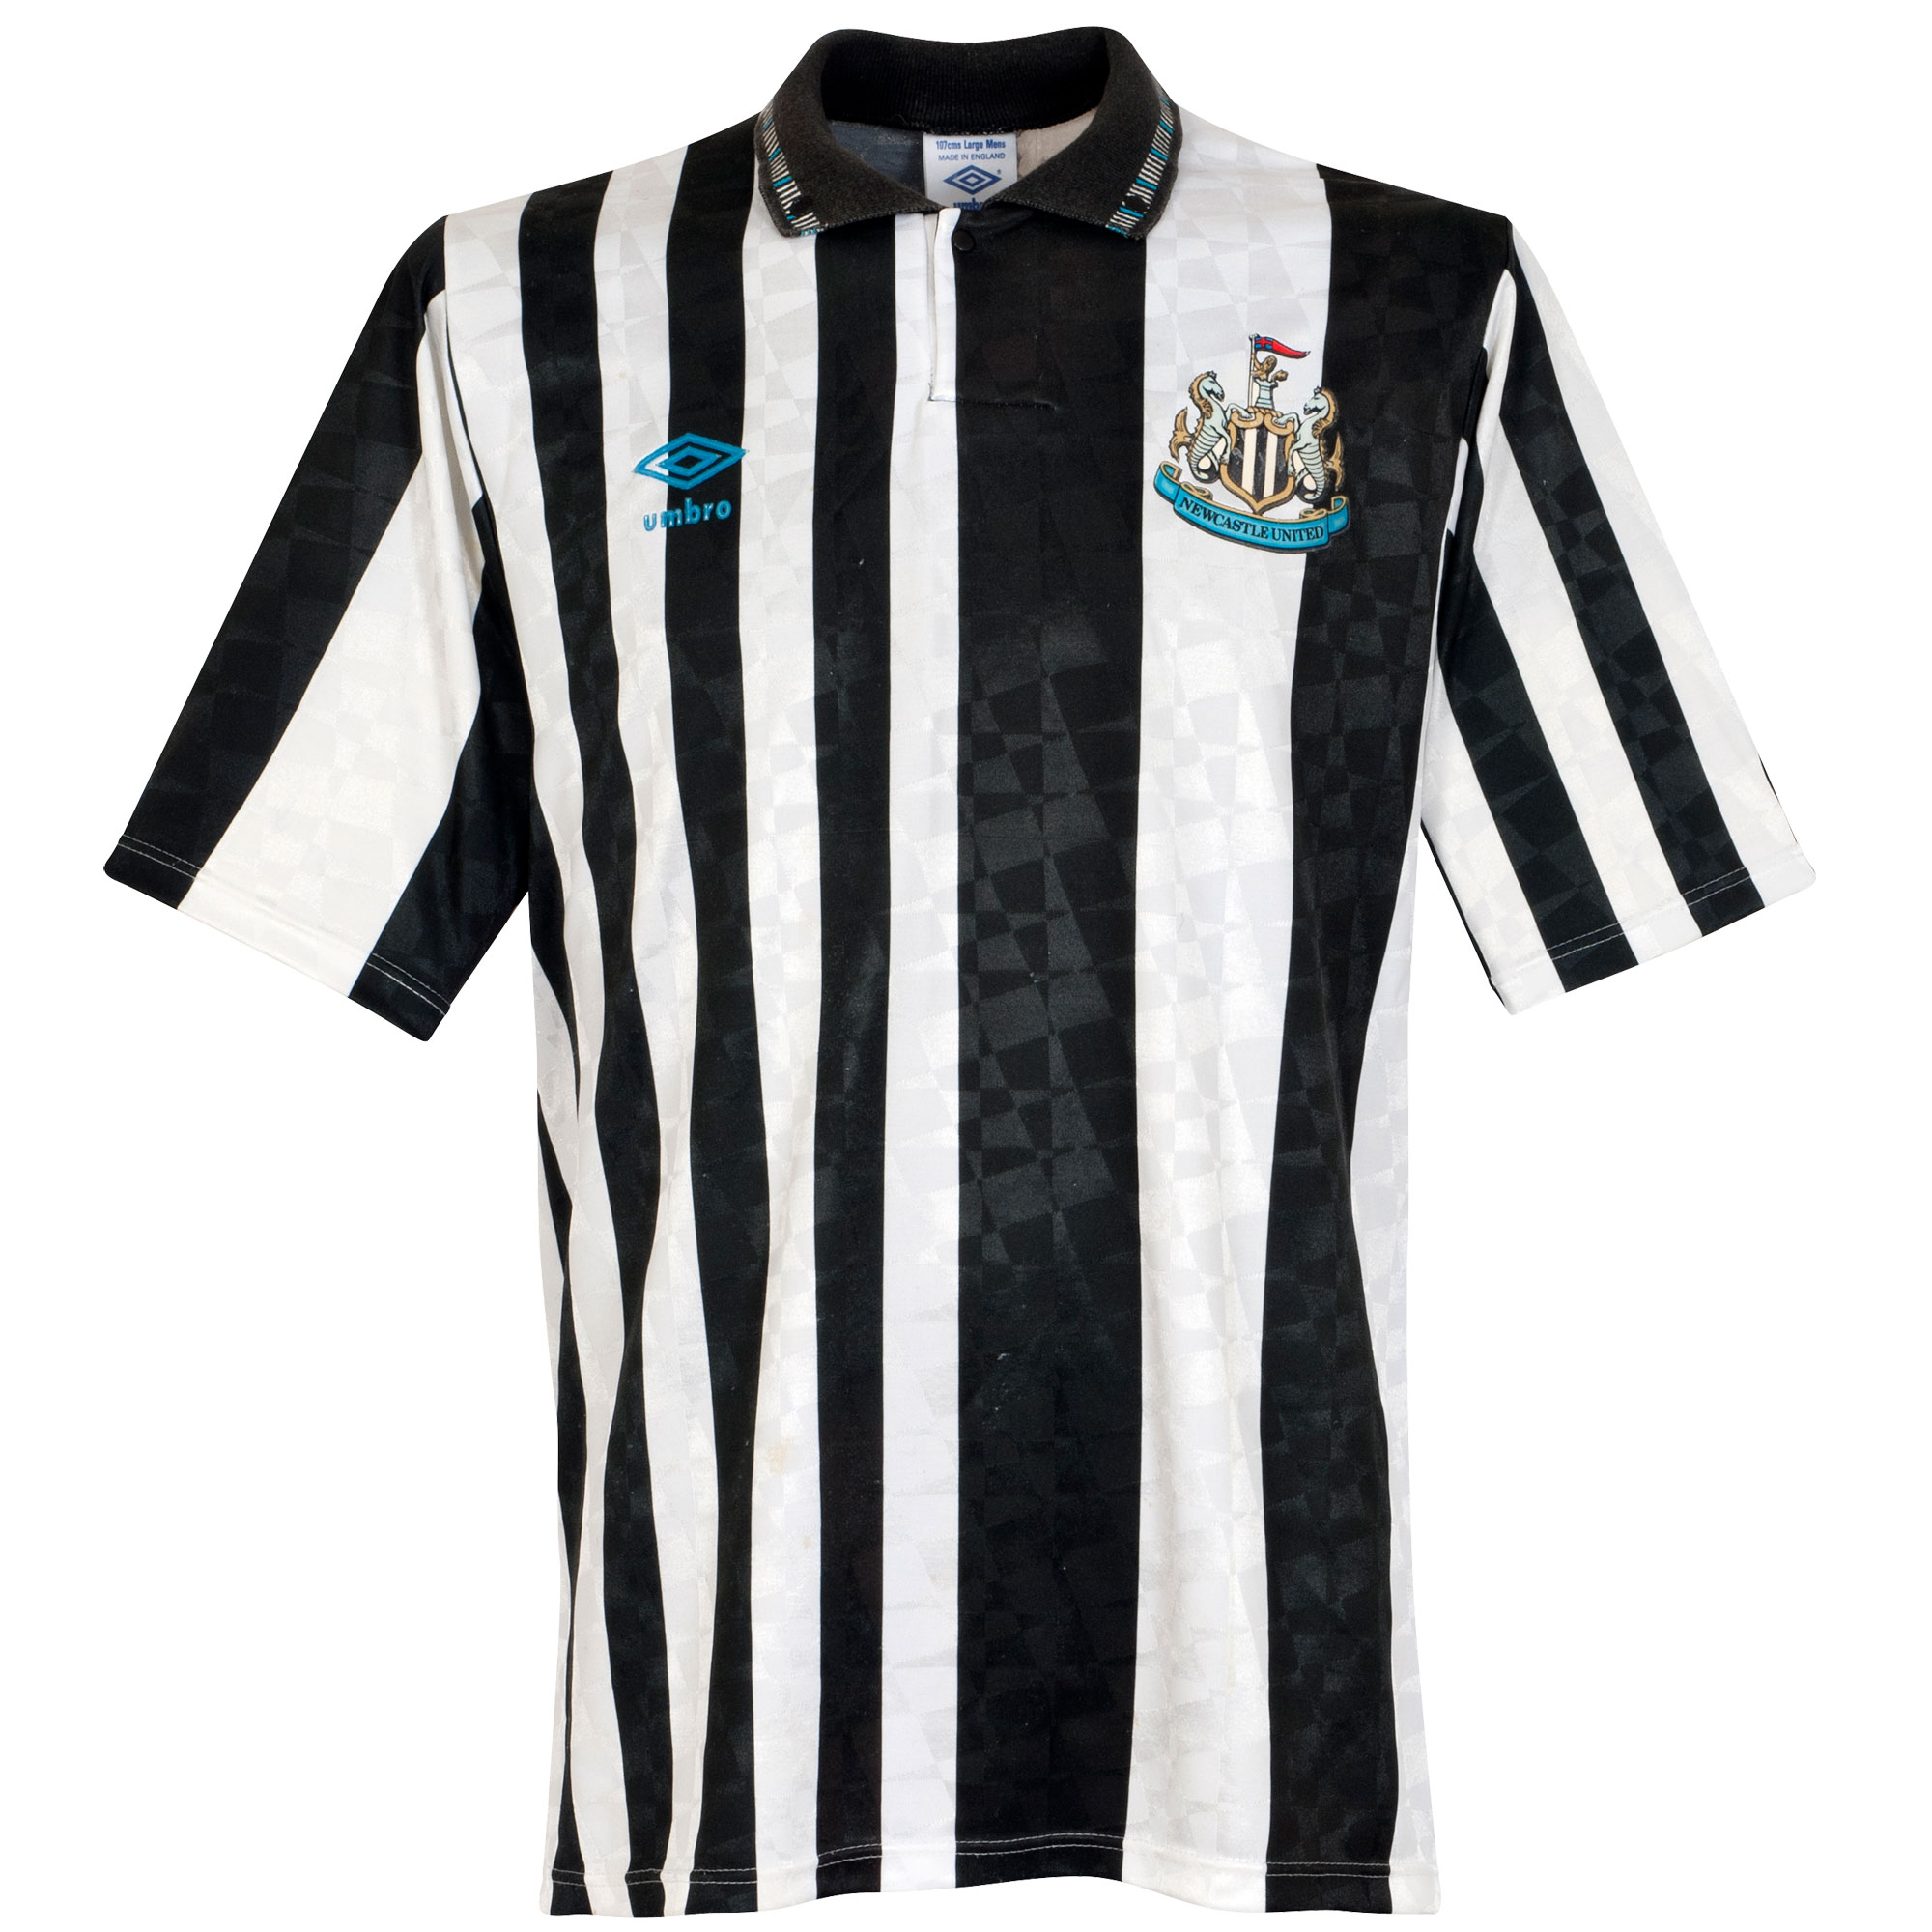 Umbro Newcastle United 1991-1992 Home Shirt - USED Condition (Fair) - Size Large